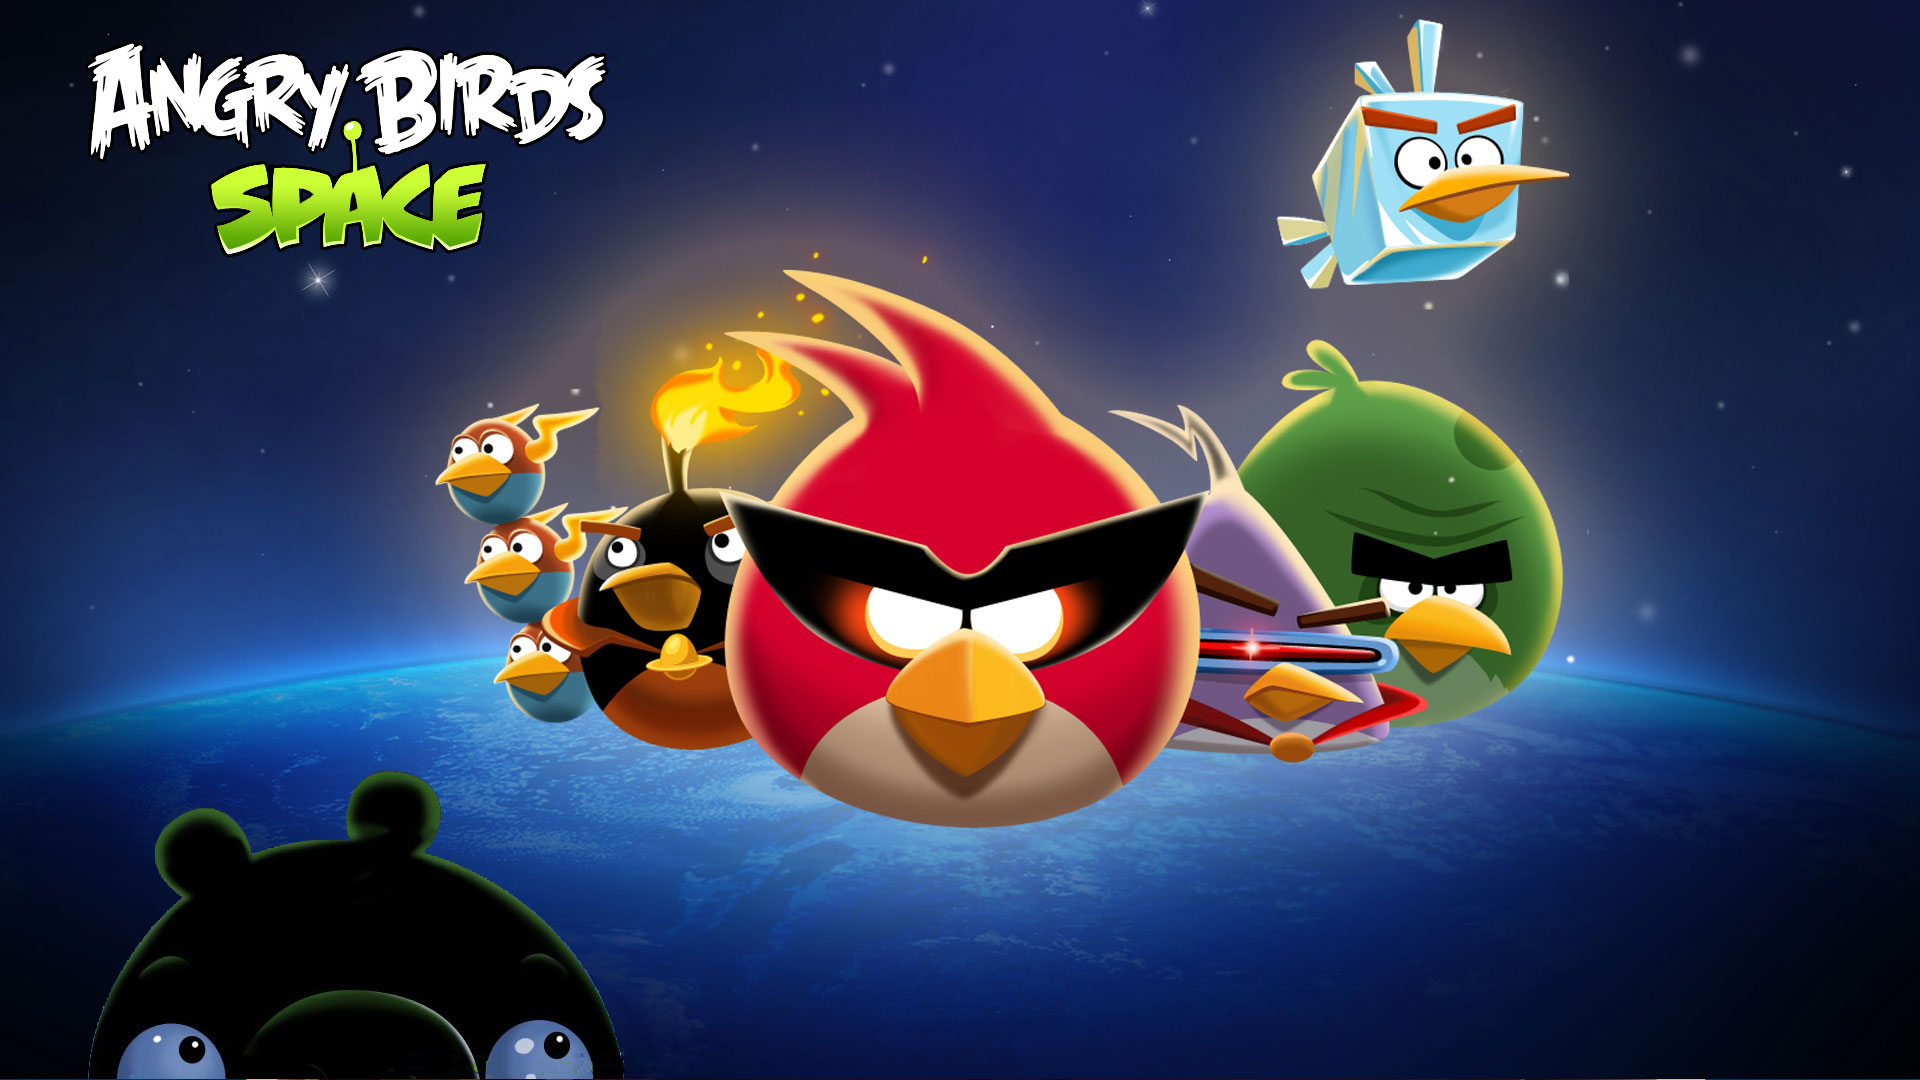 Download-Angry-Birds-Space-Images-HD